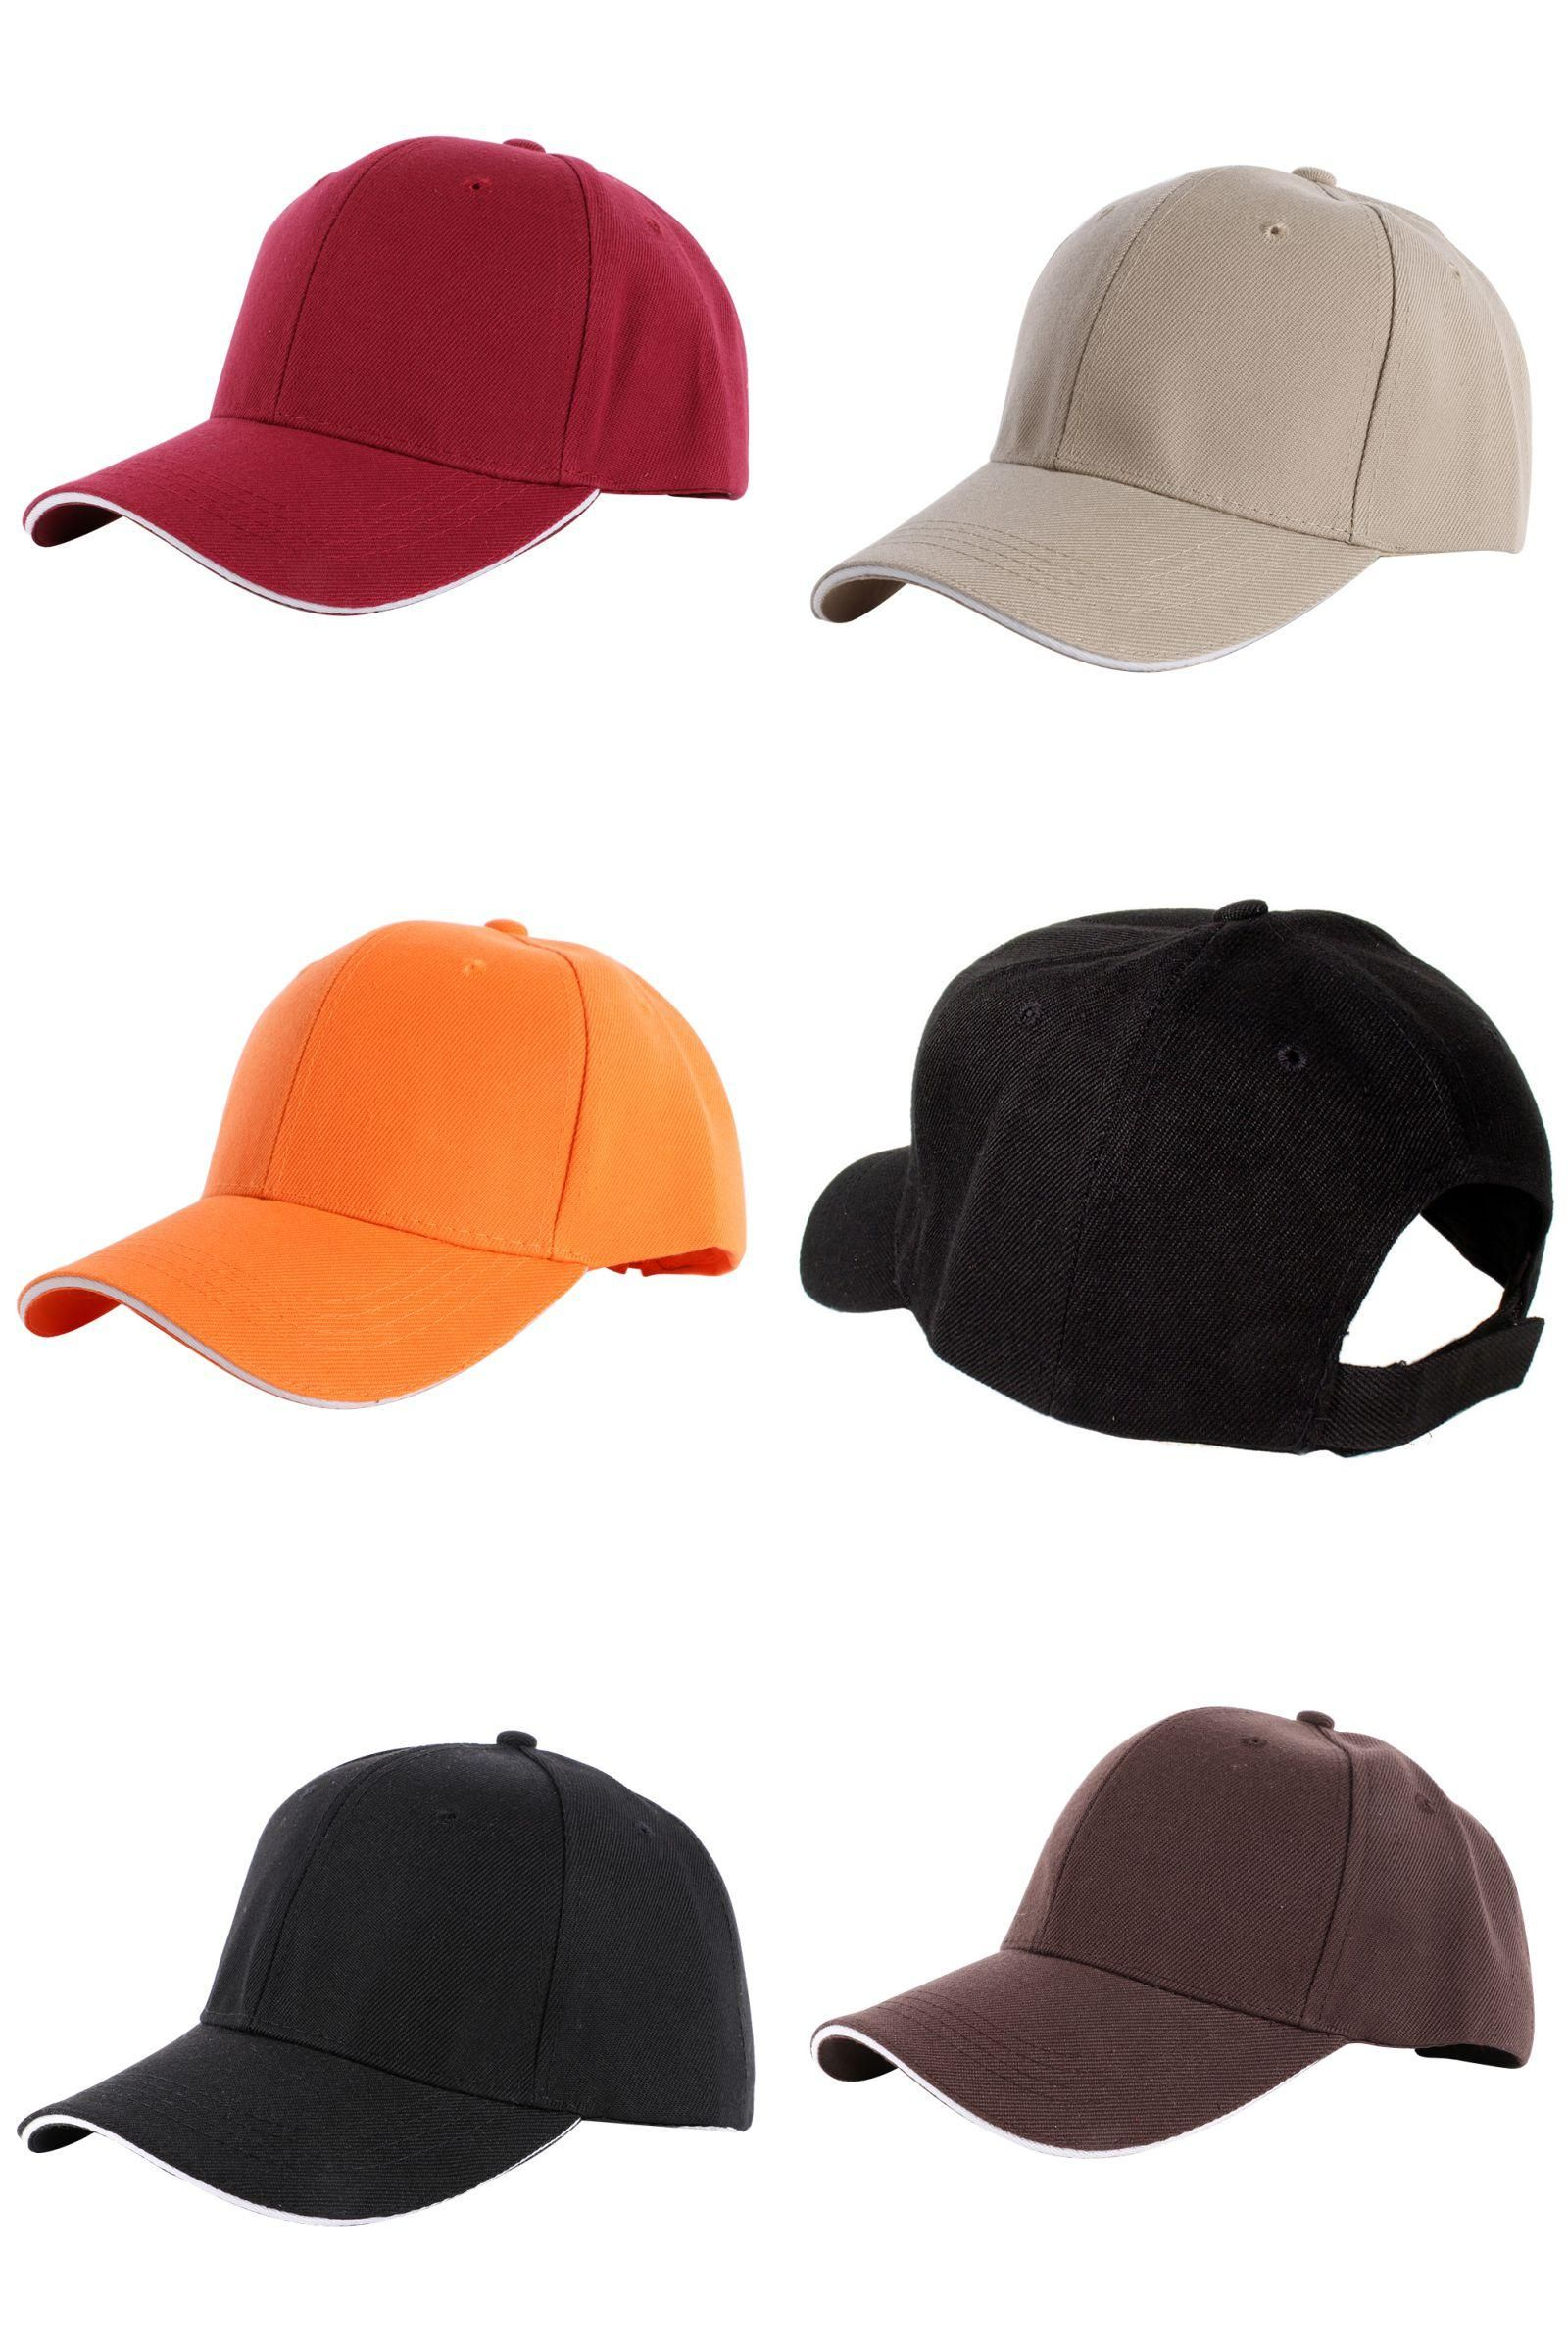 8072e4581f6f9 Visit to Buy] Men Women Blank Plain Baseball Cap Curved Visor Sun ...